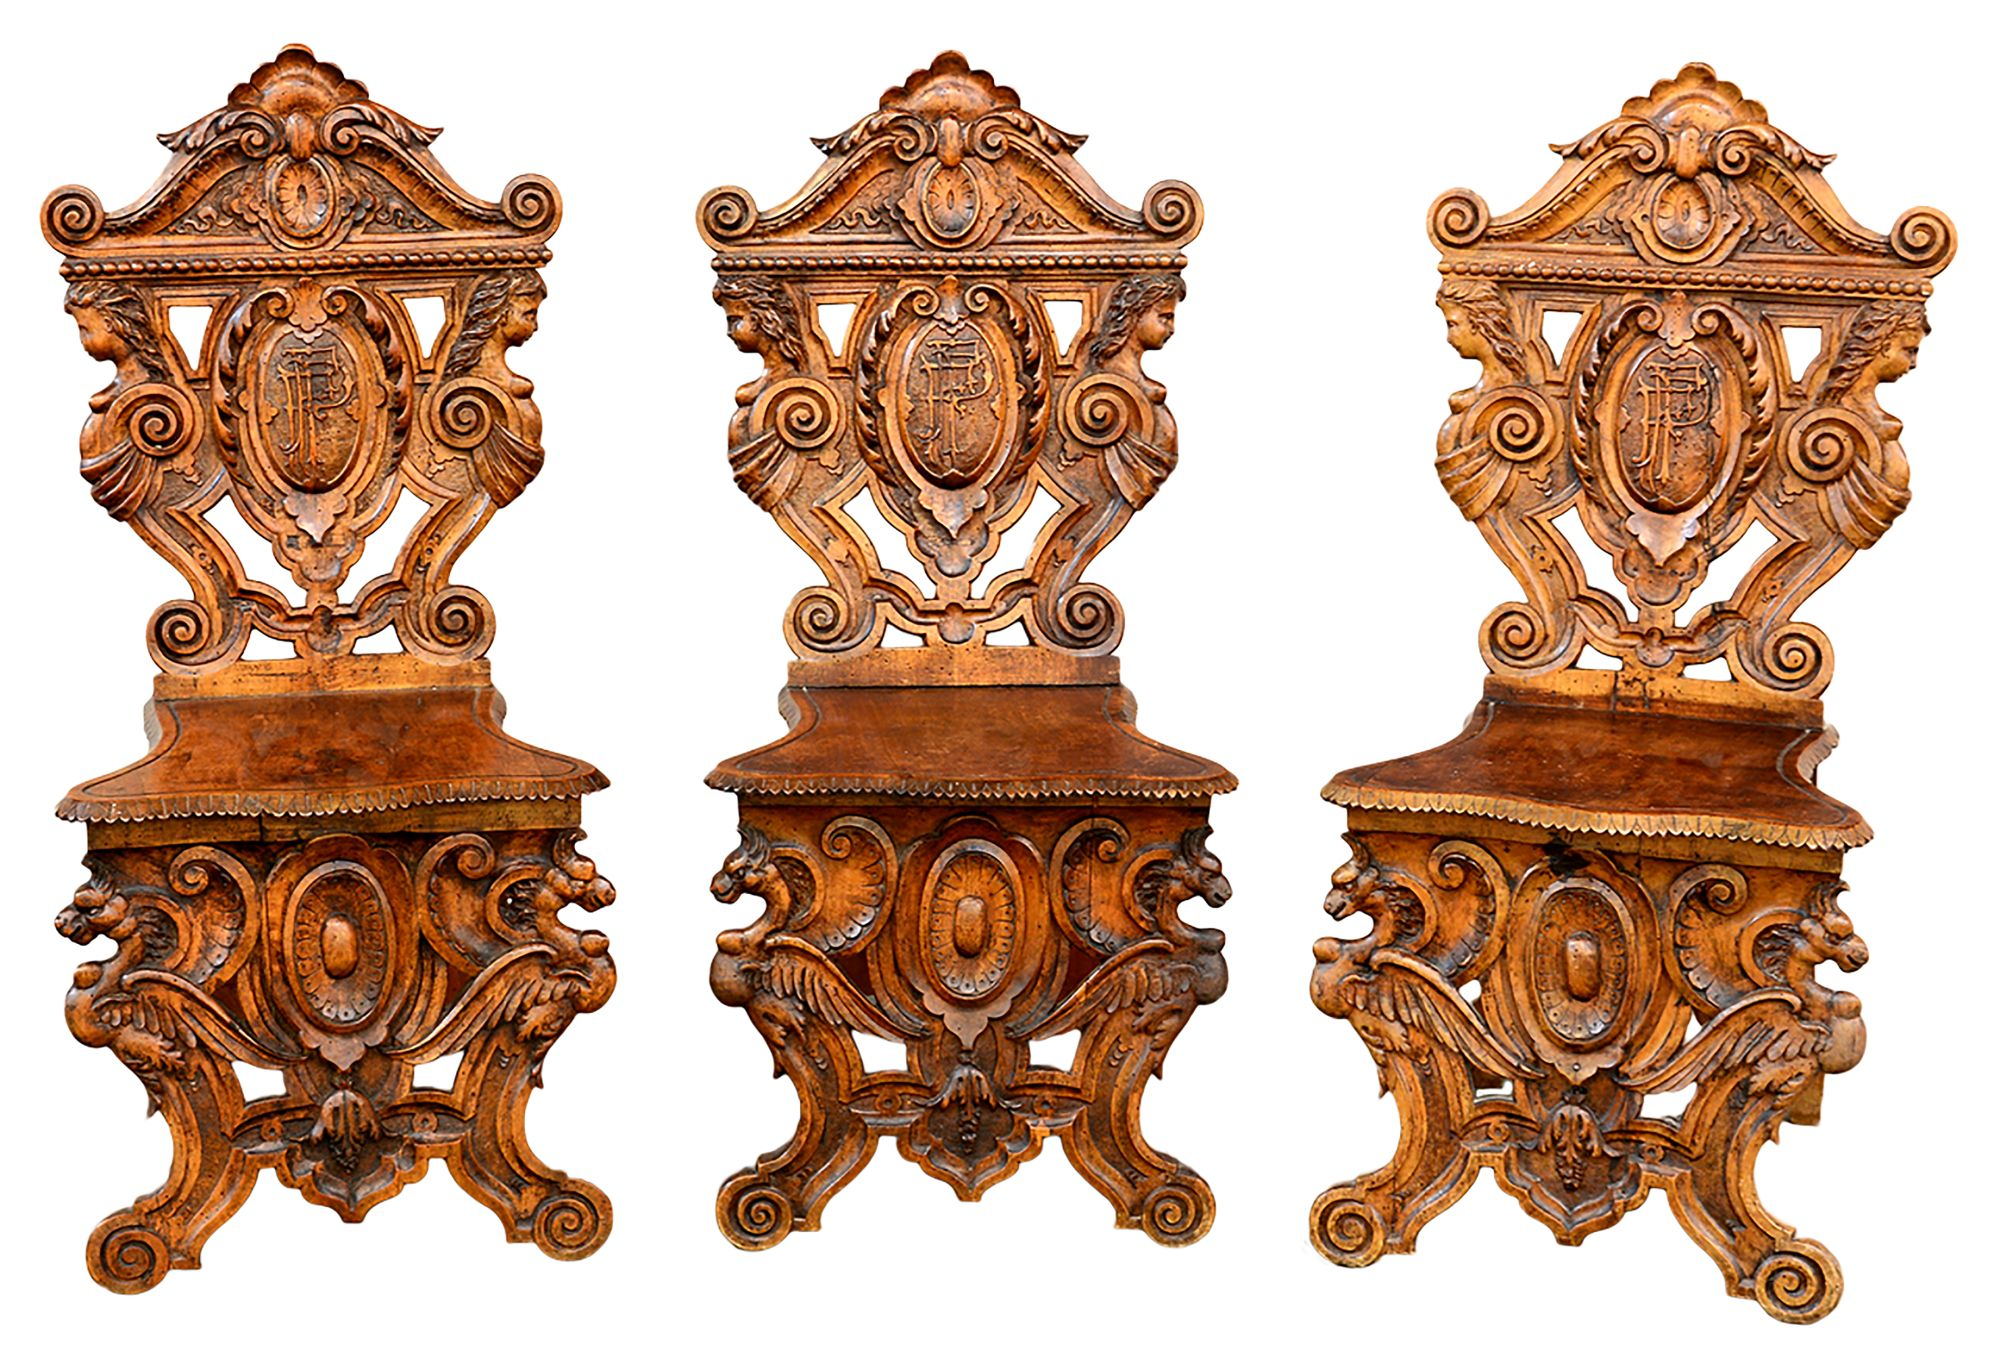 Antique italian hand carved chairs by valentino besarel late 1800s set of 3